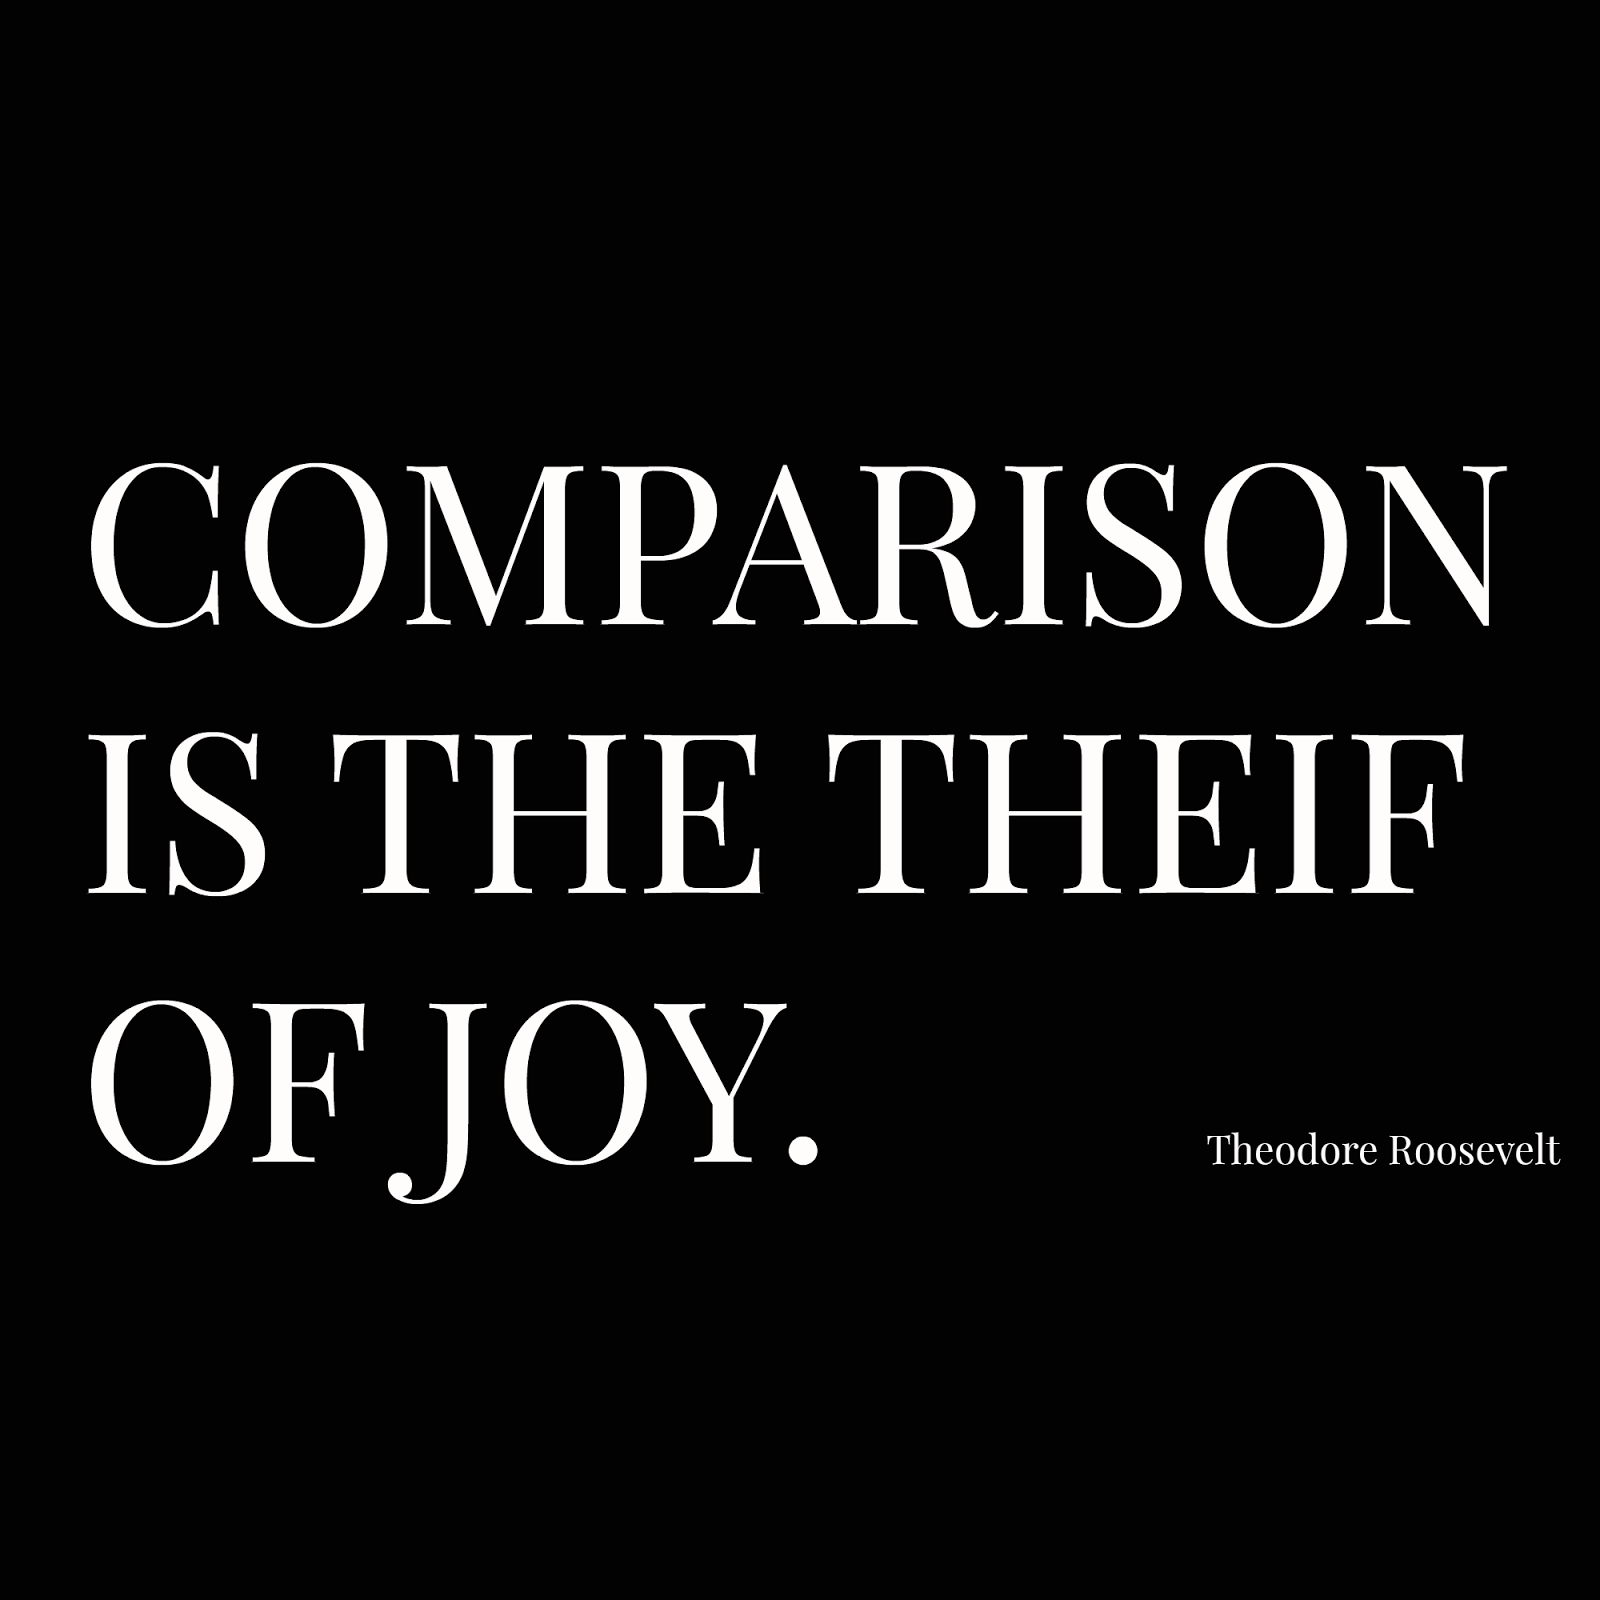 comparison-is-the-thief-of-joy